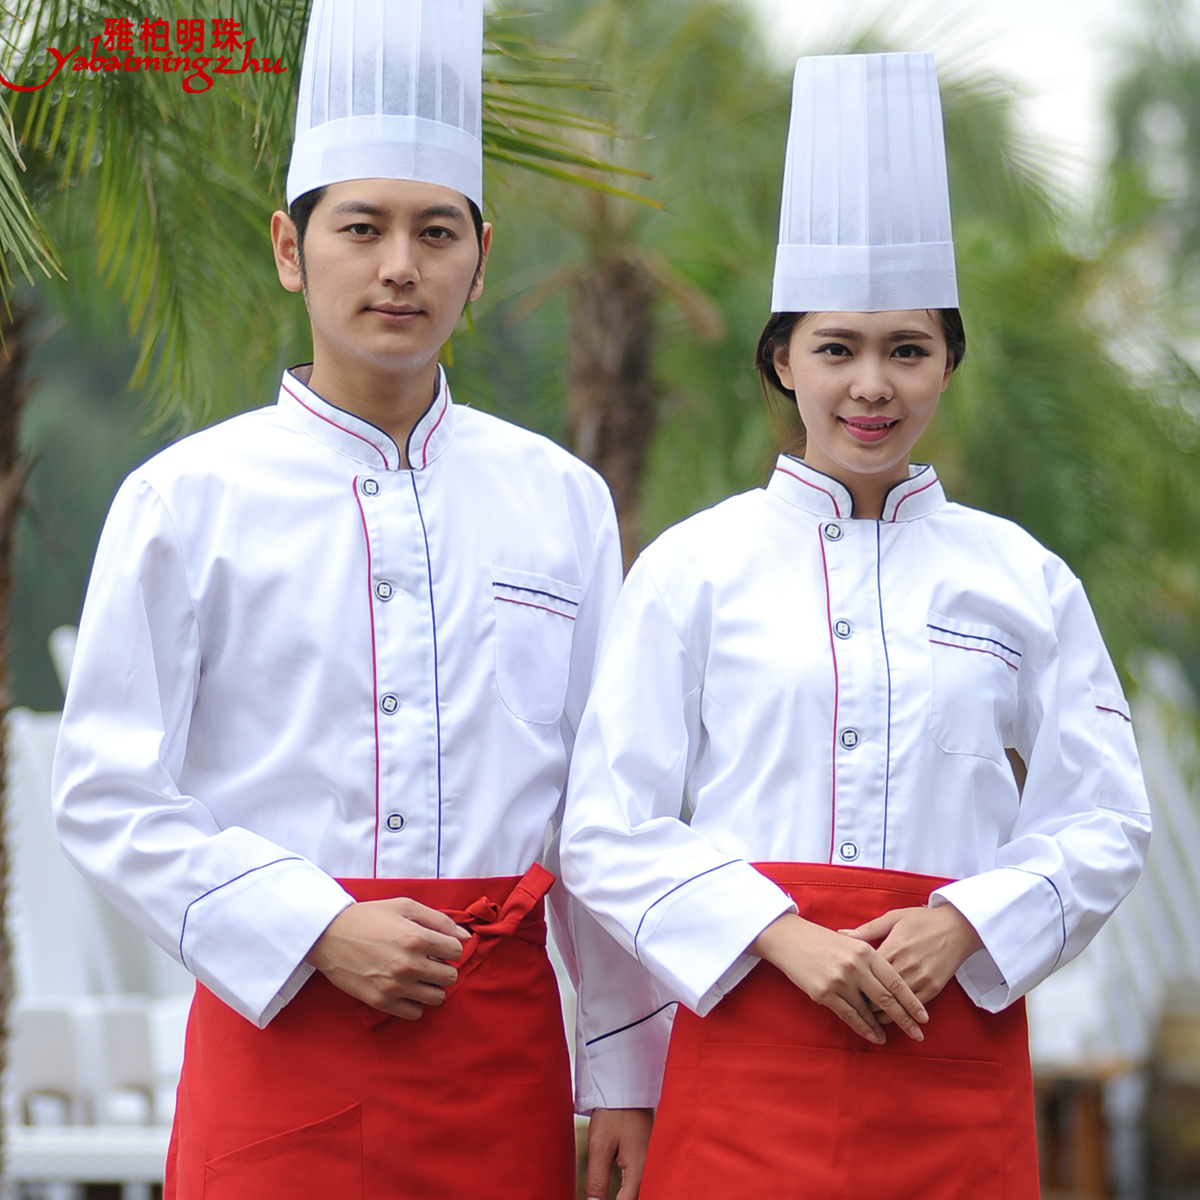 Fall and winter clothes chef clothing long sleeve chef uniforms chef service hotel catering chef clothing chef uniforms chef service hotel restaurant chef clothing